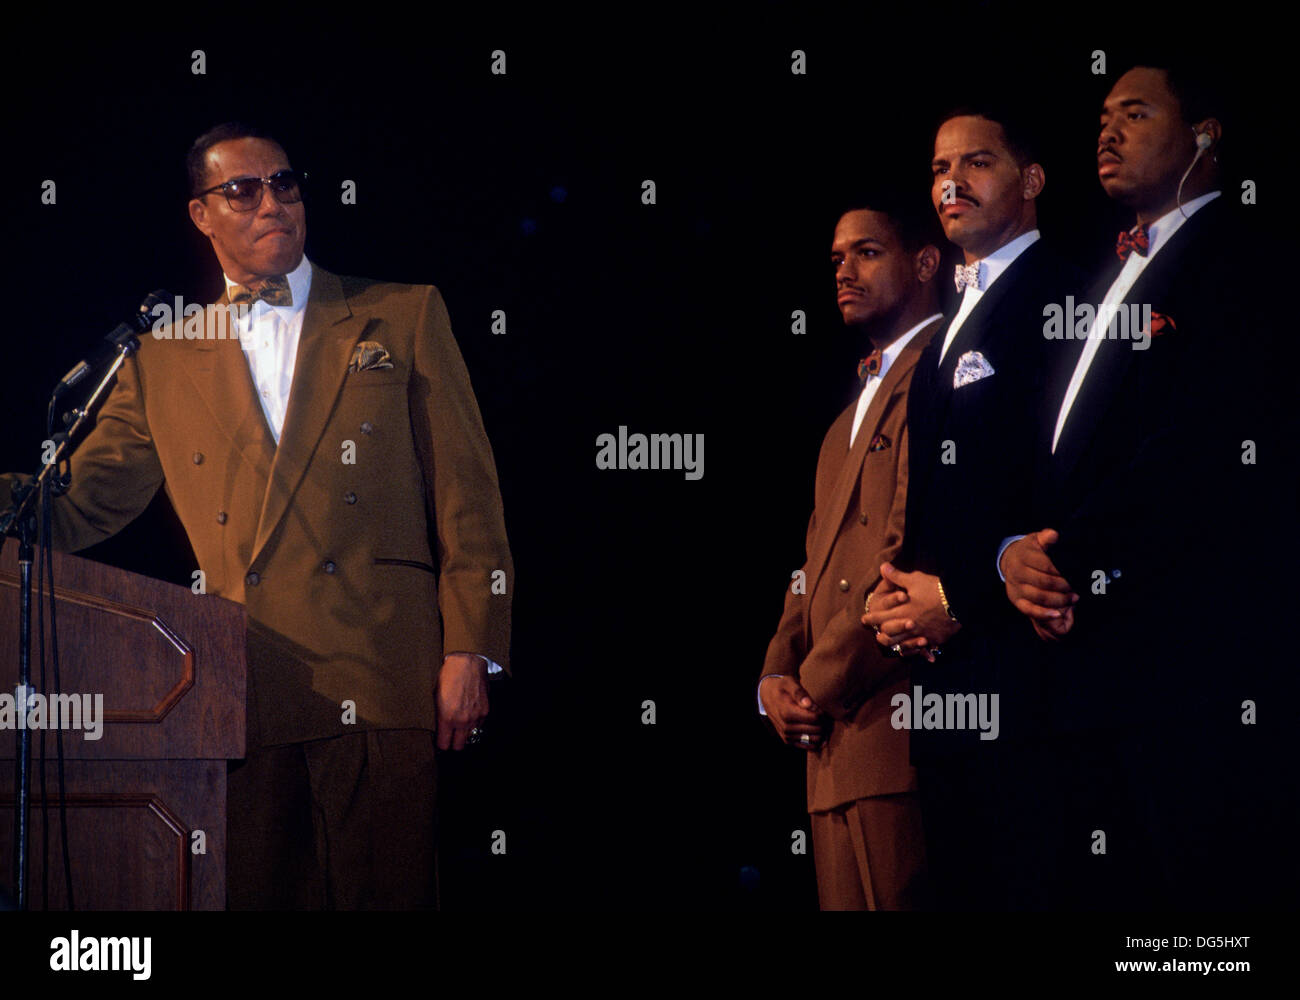 New York City, NY - 1992 Minister Louis Farrakhan, Nation des Islams Stockbild